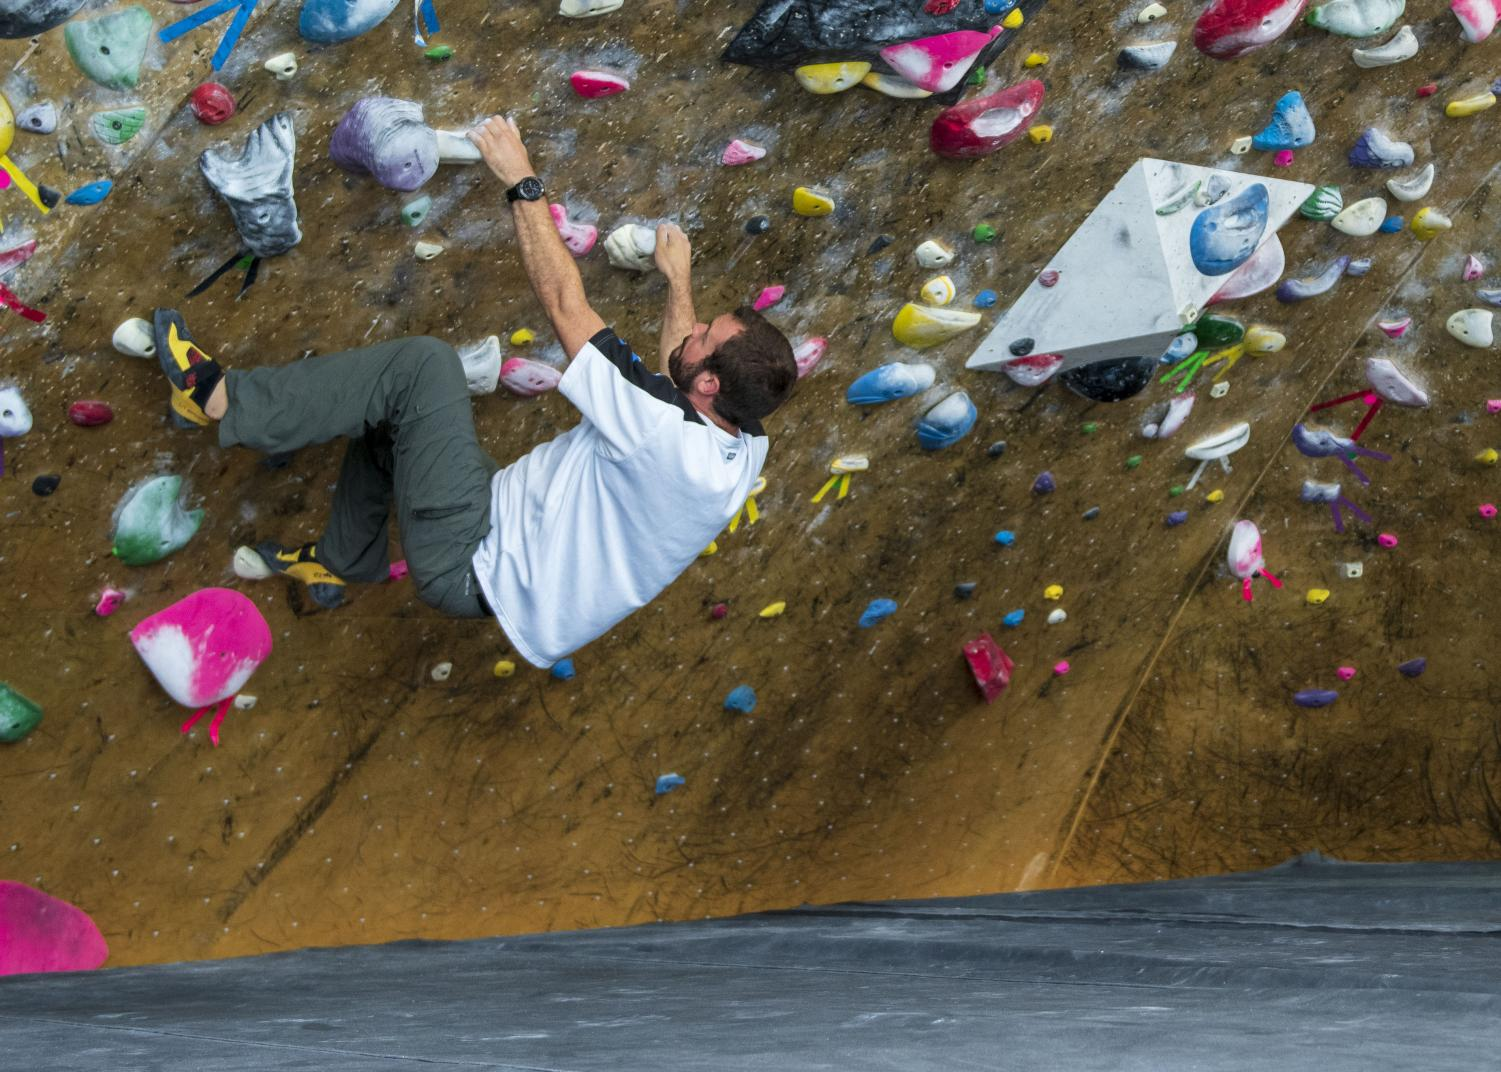 Photos by Peter Creveling. Featured: Climber at the Front Climbing Gym in Salt Lake City, Utah.